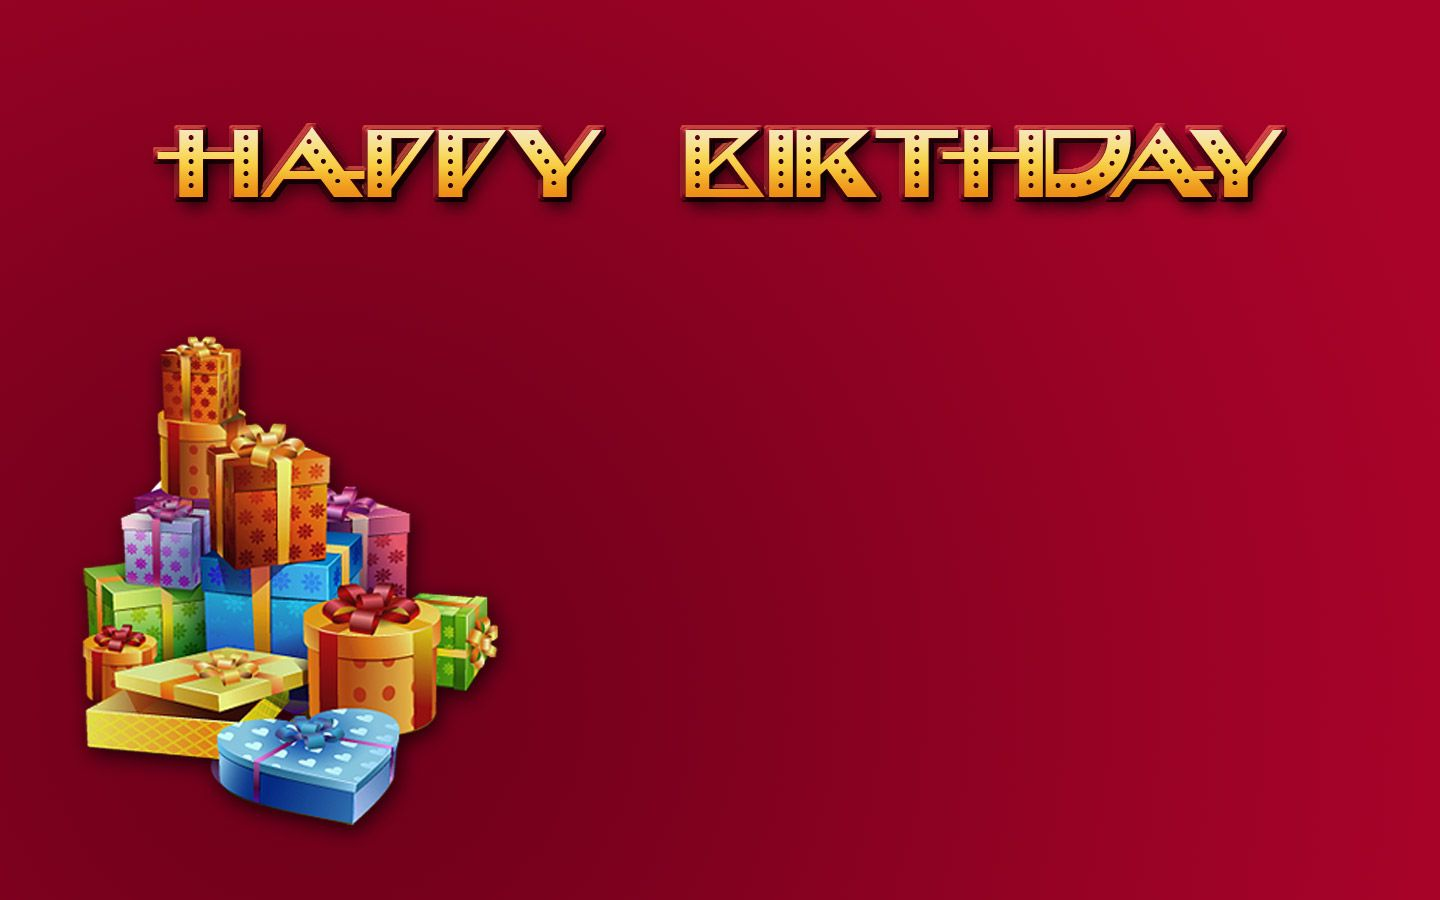 Hd wallpaper birthday - Pin By Shaheen Shafique On Happy Birthday Images Pinterest